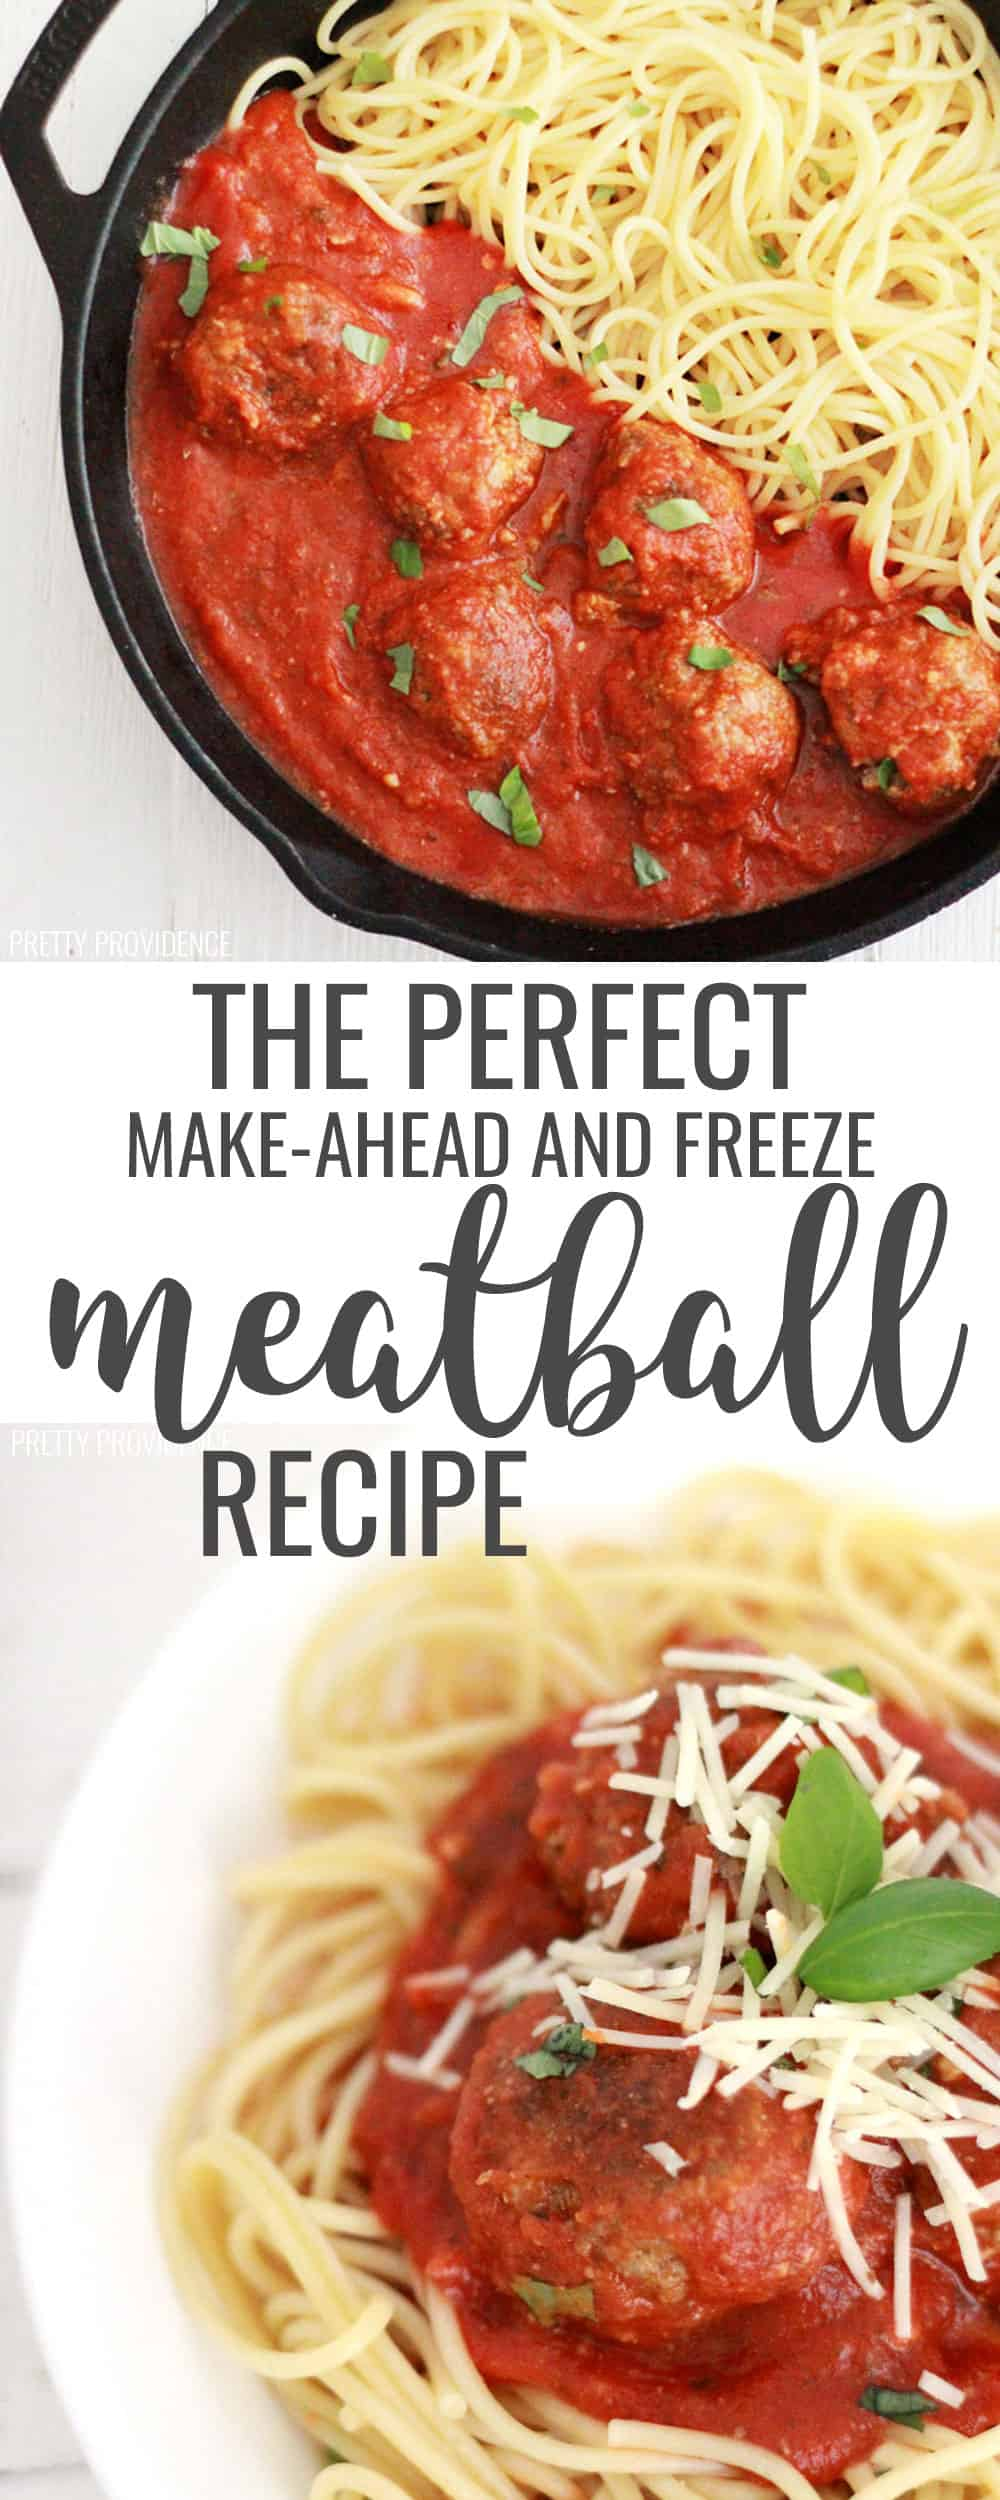 This is the perfect make-ahead and freeze homemade meatball recipe! You will love these meatballs for kid-friendly meals your whole family will love!  #meatball #meatballrecipe #freezerfriendly #freezercooking #freezerrecipe #freezermeatballs #makeaheadandfreeze #cooking #recipes #easyrecipe #easyfoodrecipe #dinner #dinnerideas #easydinner #easyrecipes